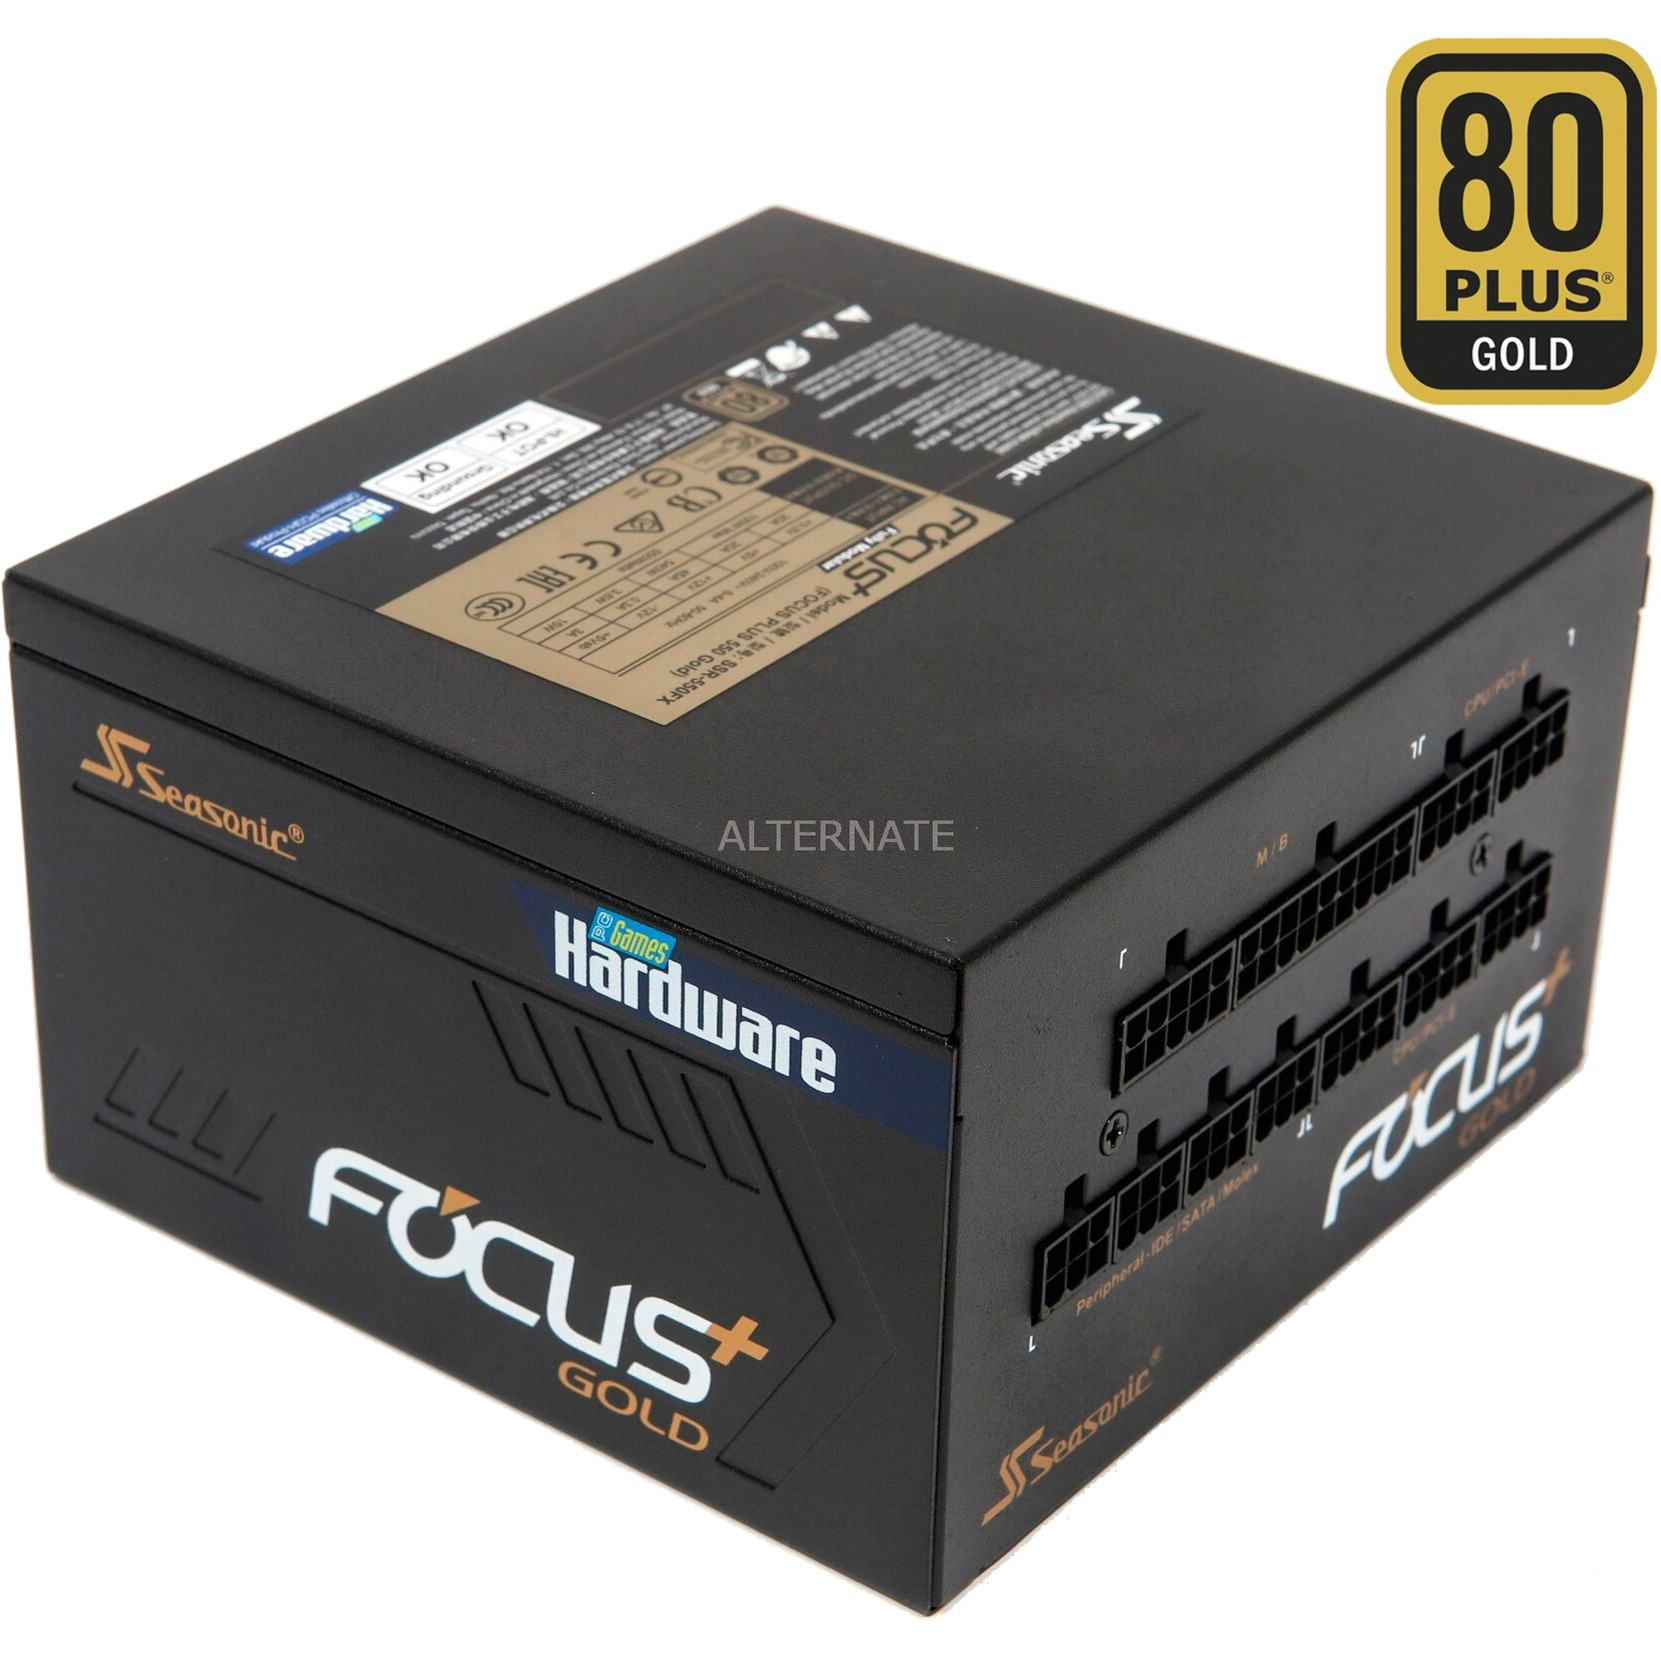 FOCUS Plus PCGH 550 Gold, Fuente de alimentación de PC